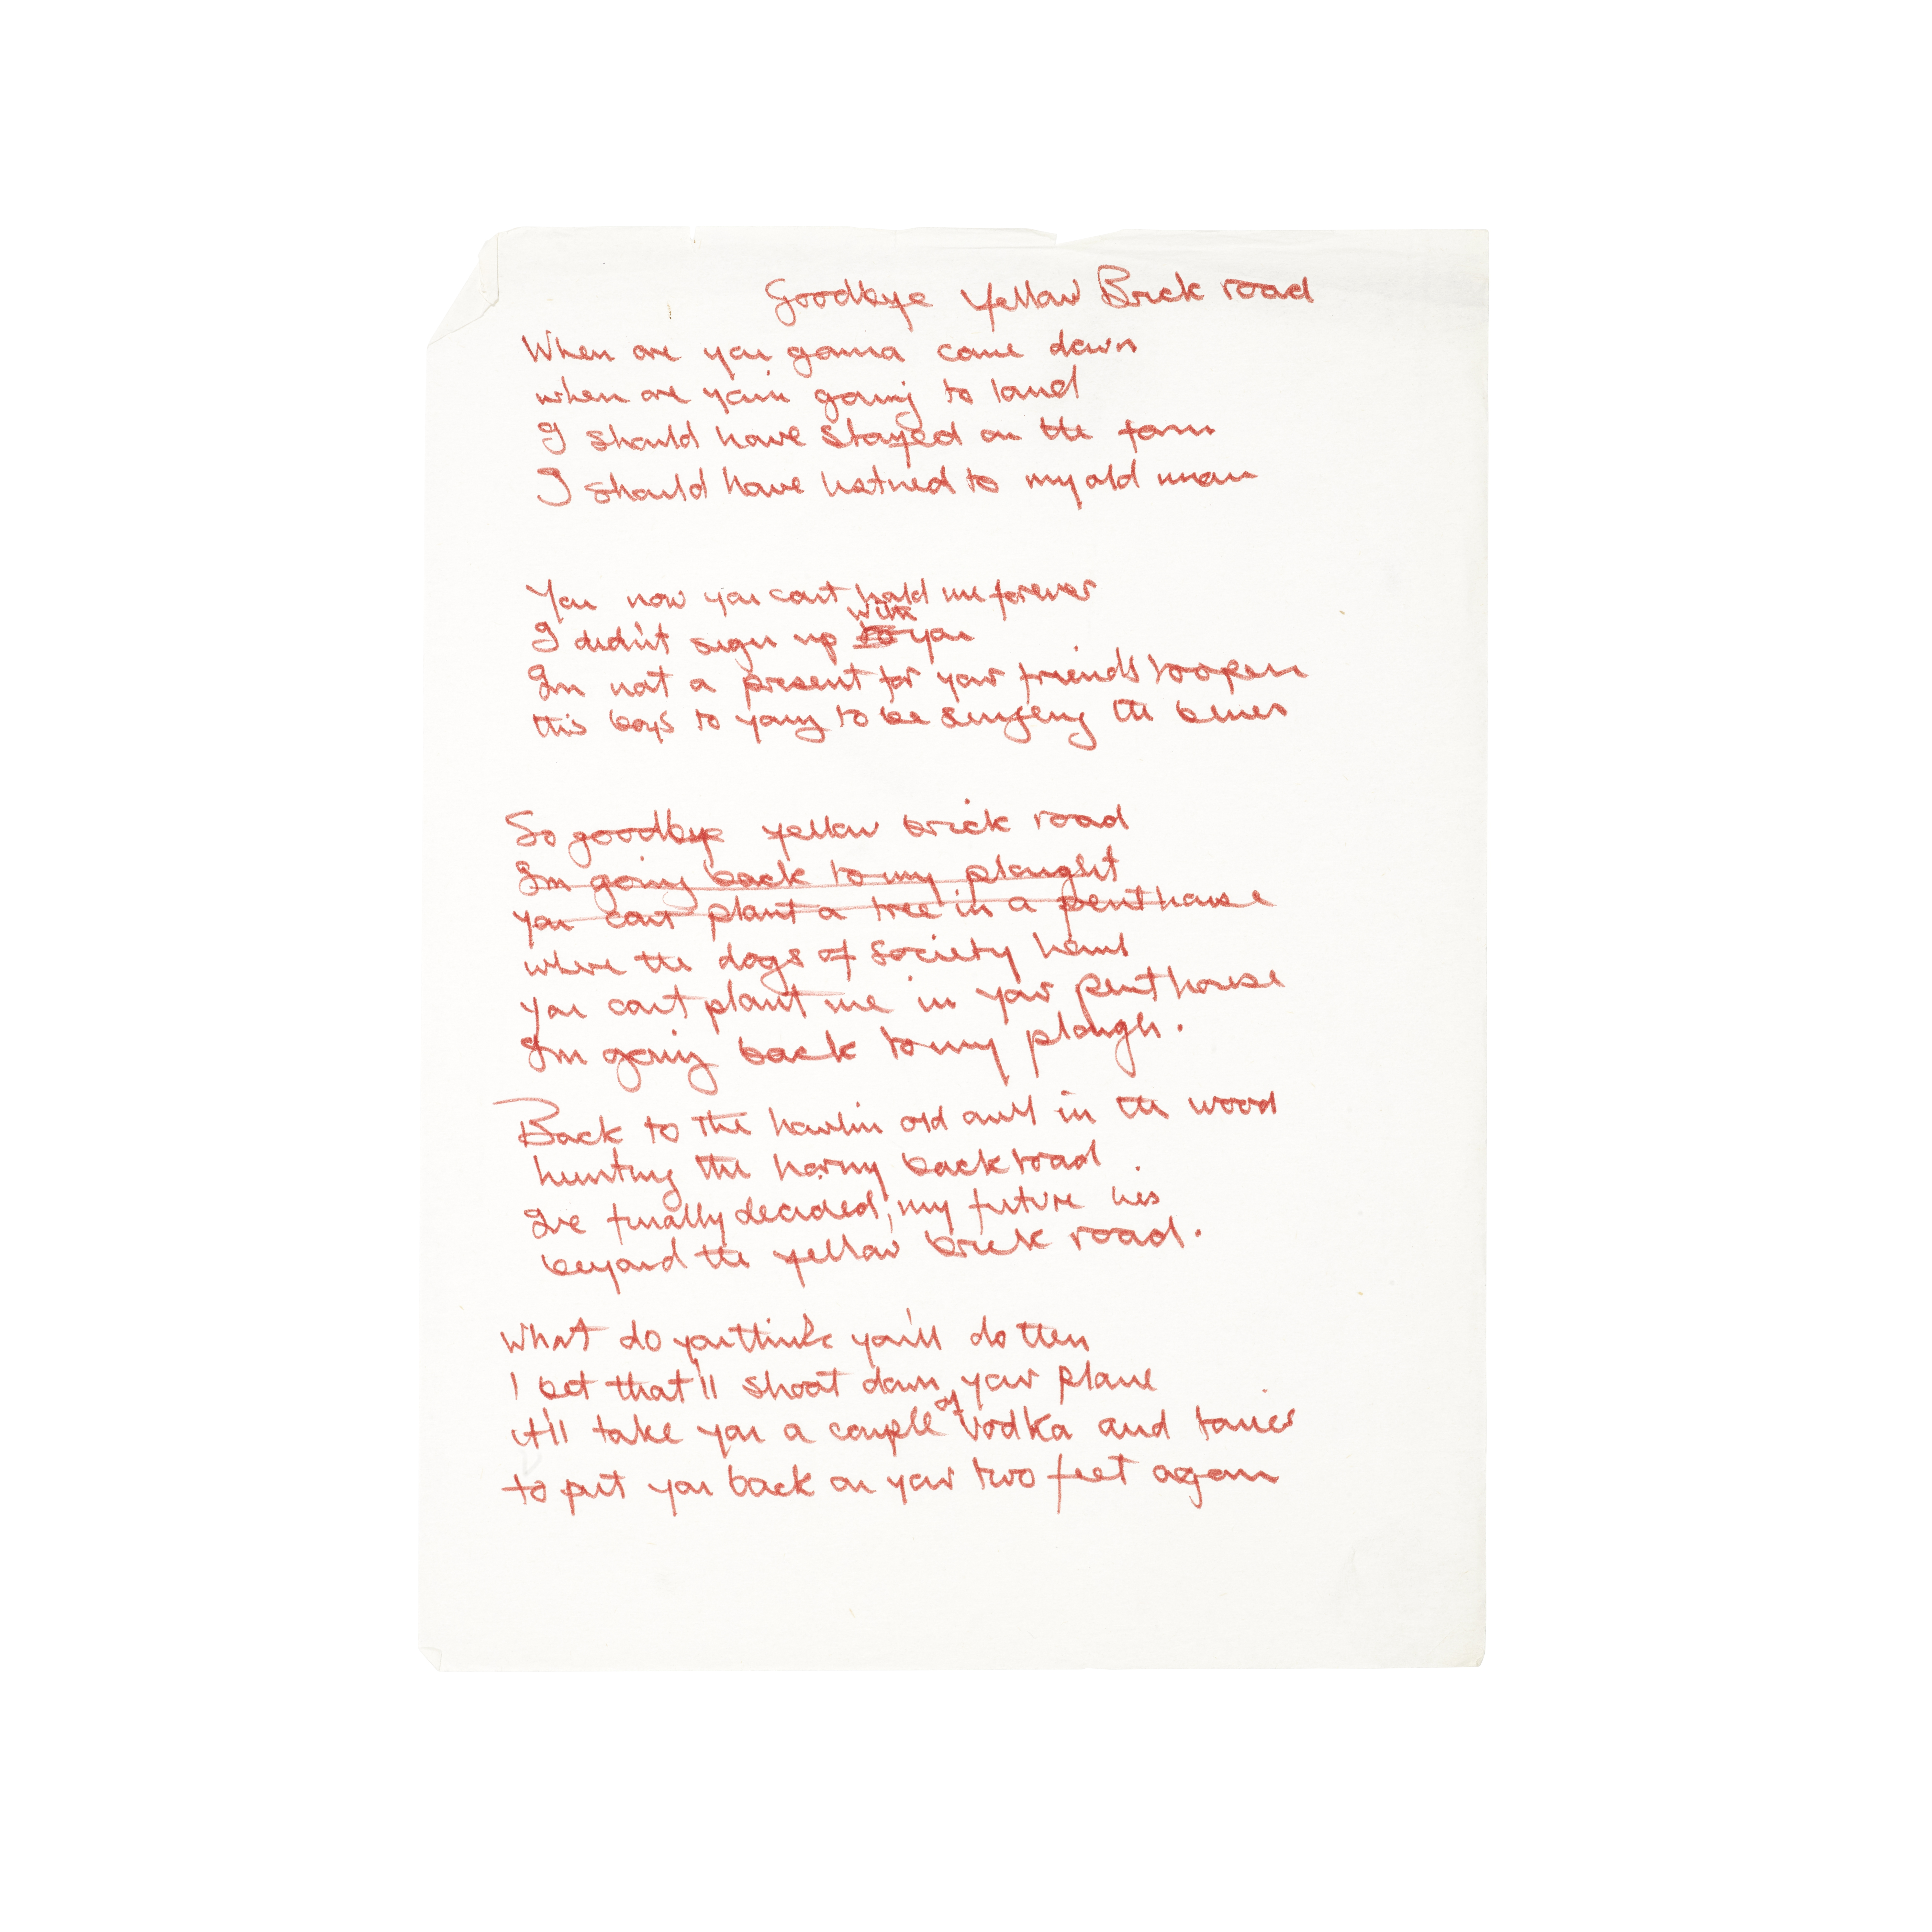 Lot 51 - Original handwritten lyrics for Elton John's 'Goodbye, Yellow Brick Road'